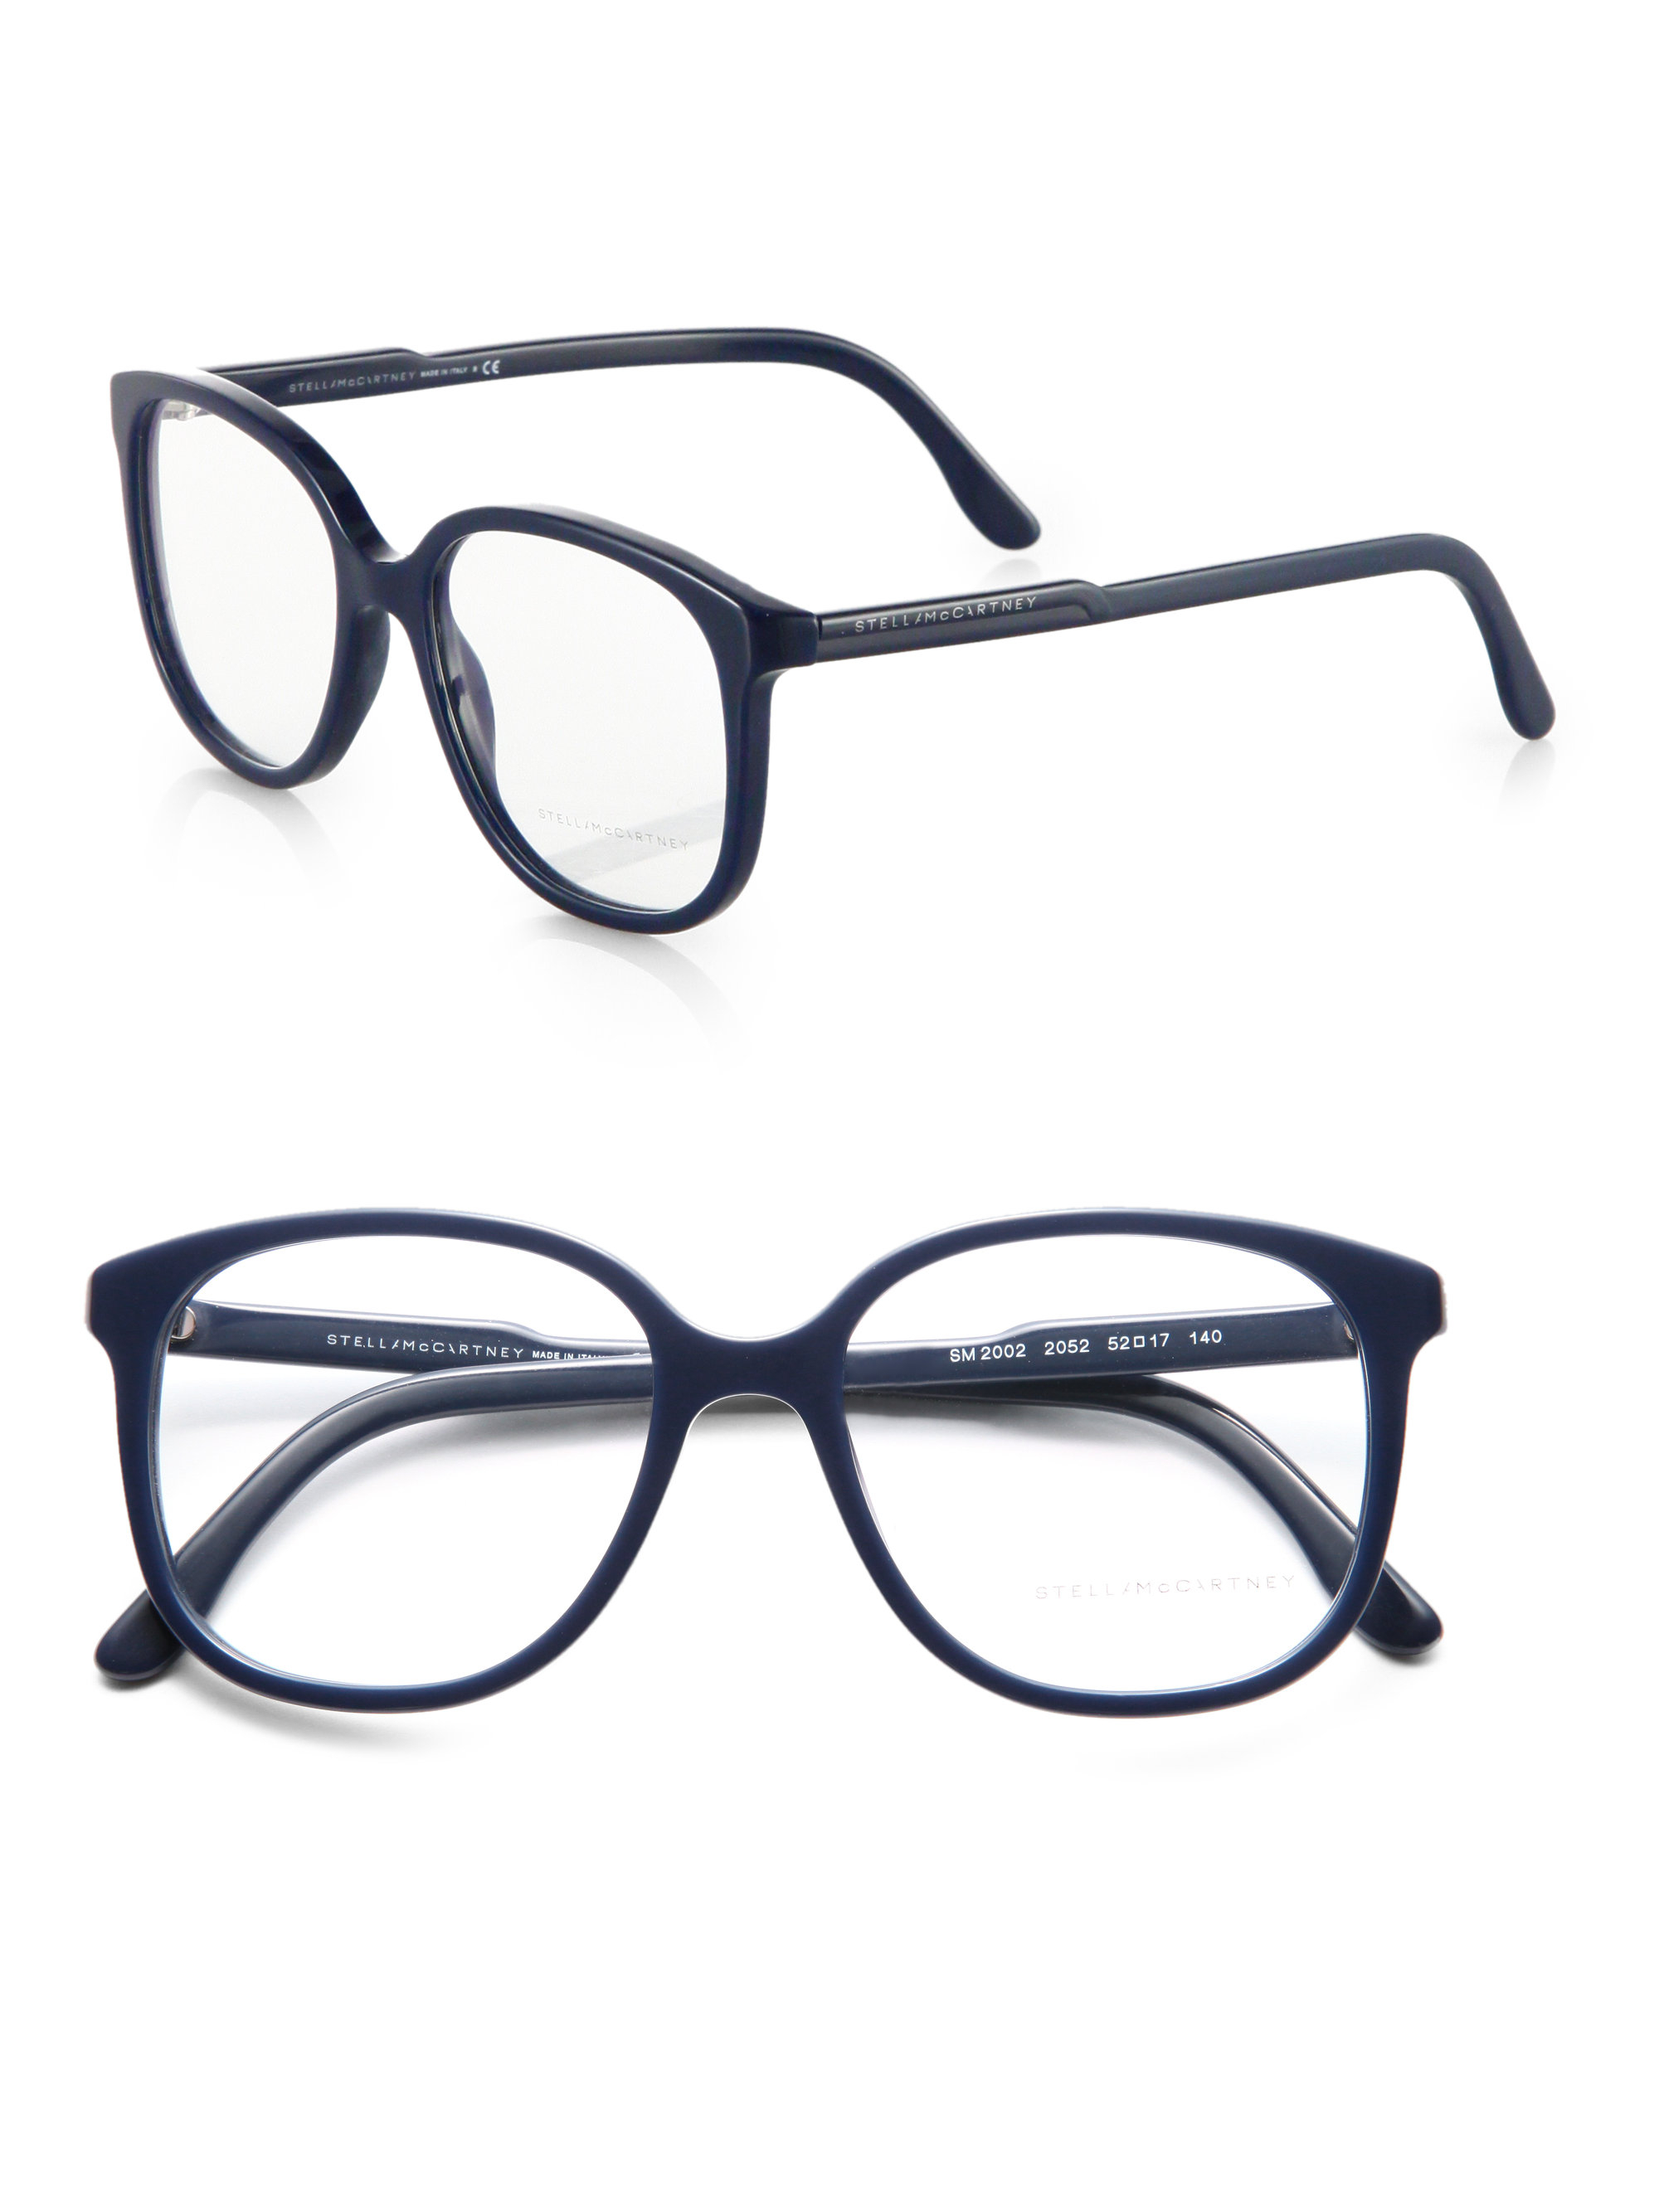 Stella Mccartney Eyewear clear square sunglasses Pay With Paypal For Sale Free Shipping Find Great Cheapest Price Sale Online XmTsA